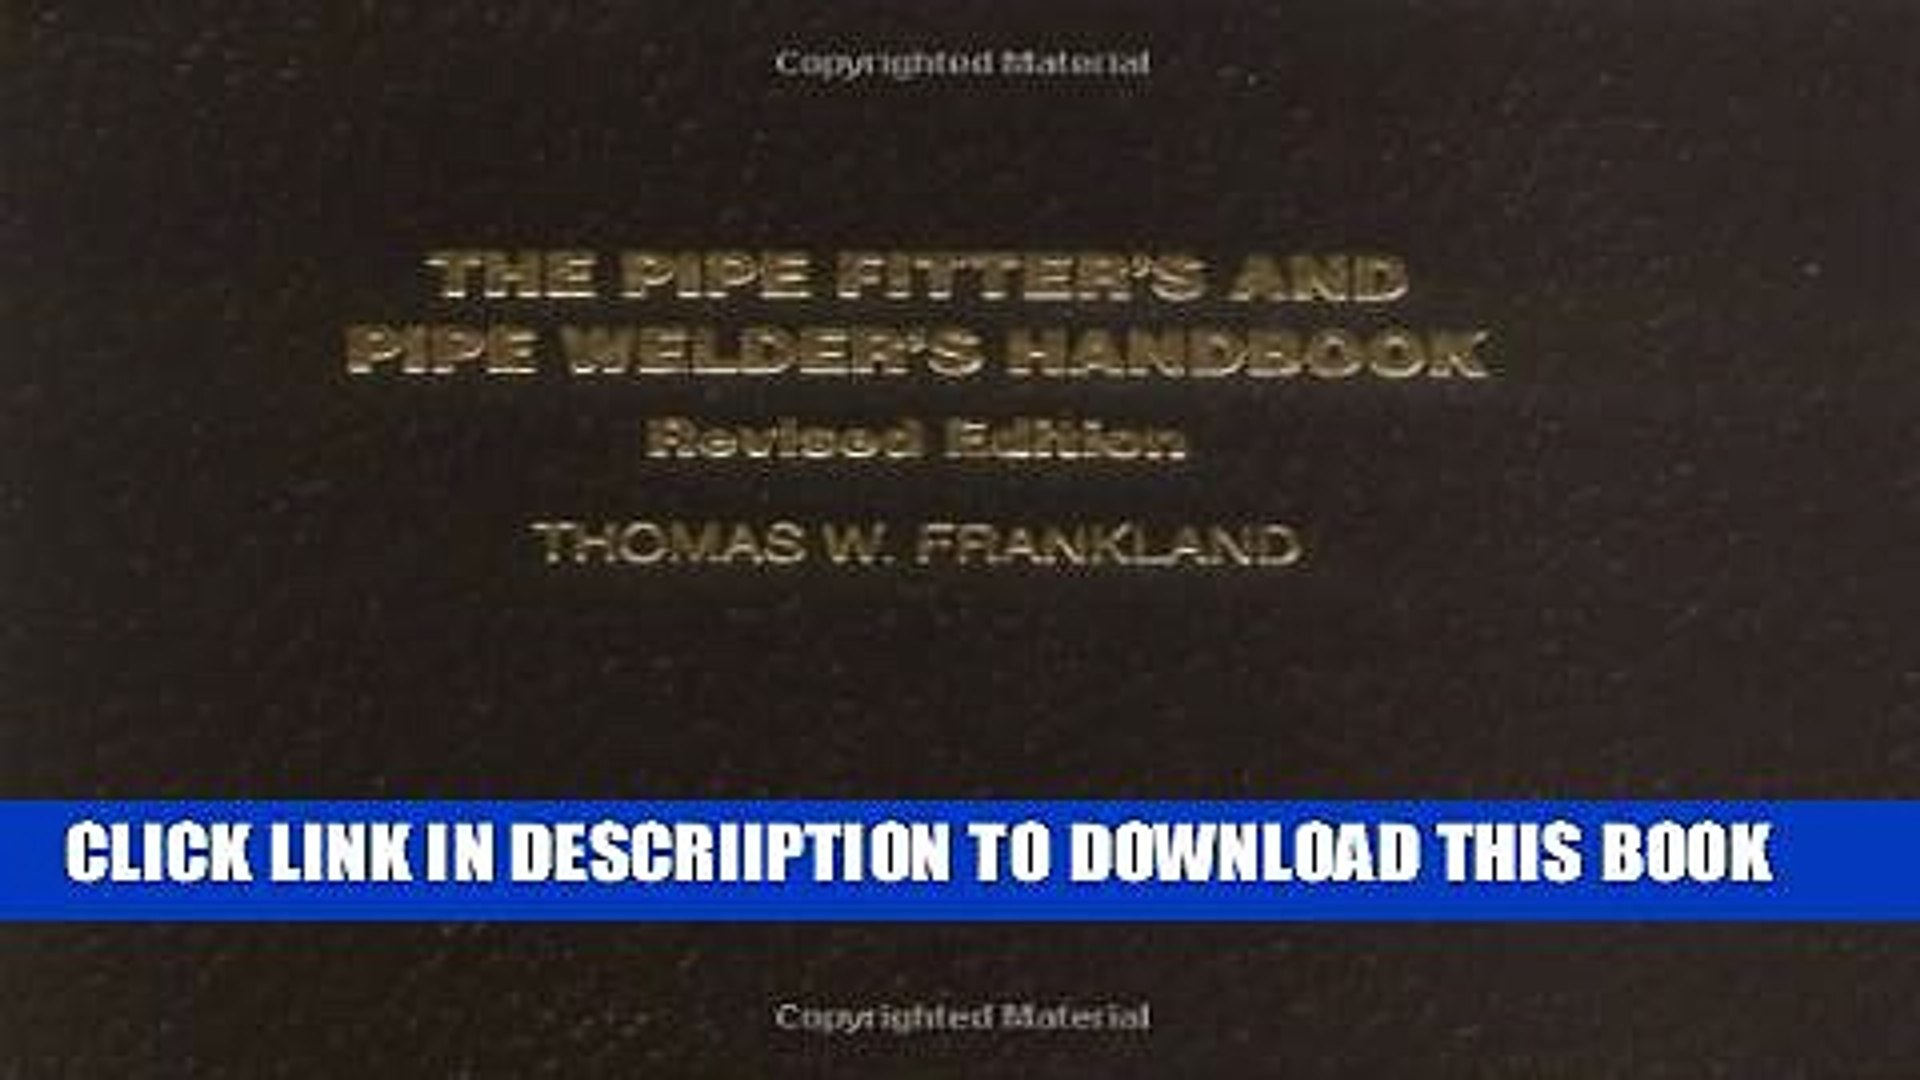 [PDF] The Pipe Fitter s and Pipe Welder s Handbook, Revised Edition Exclusive Full Ebook